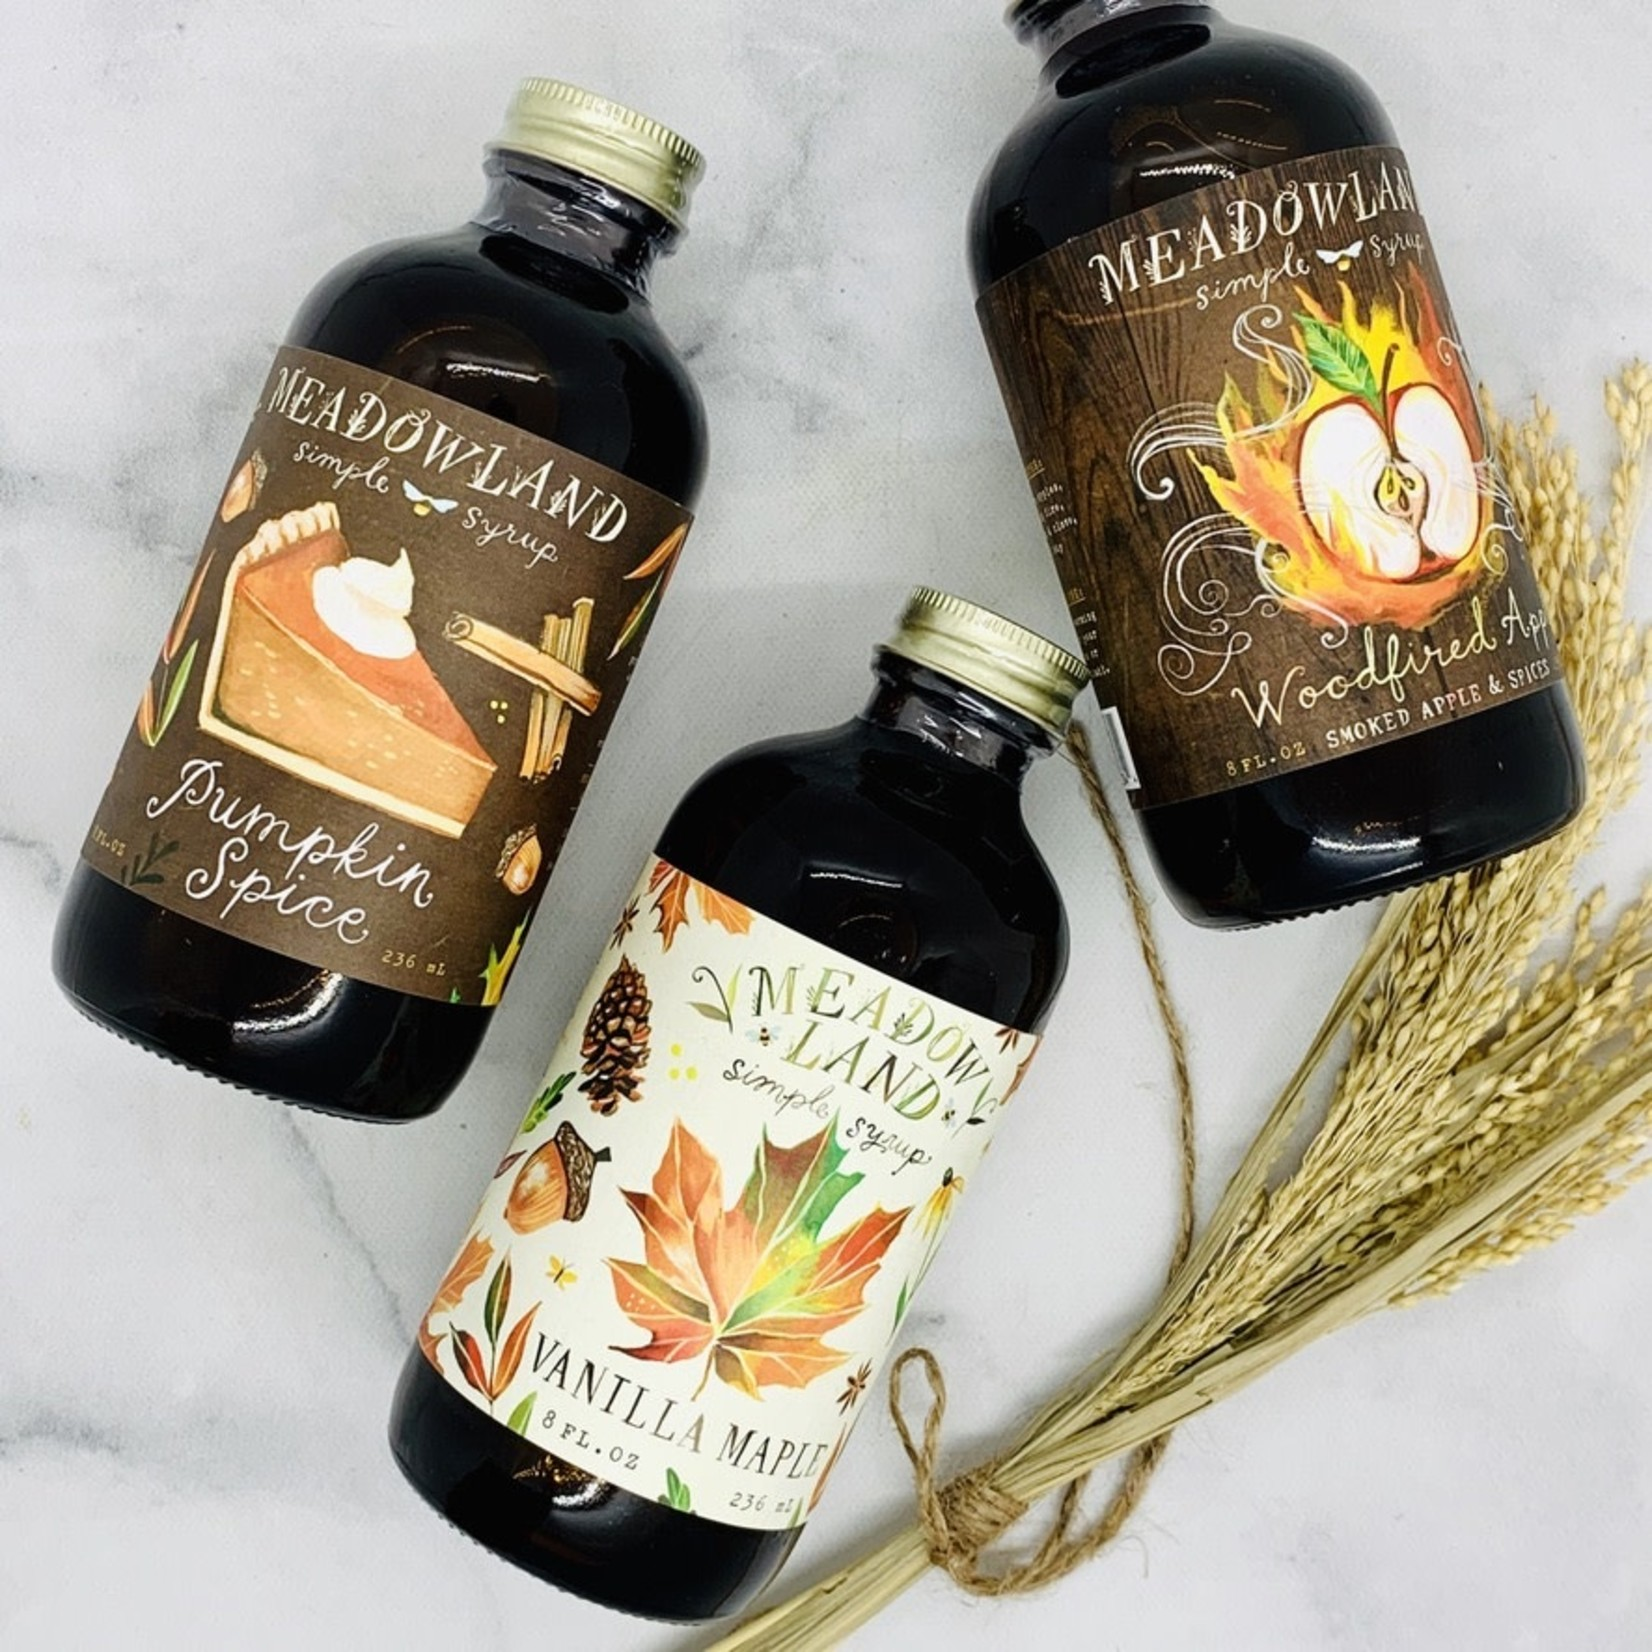 Meadowland Syrup Meadowland Fall Syrup: